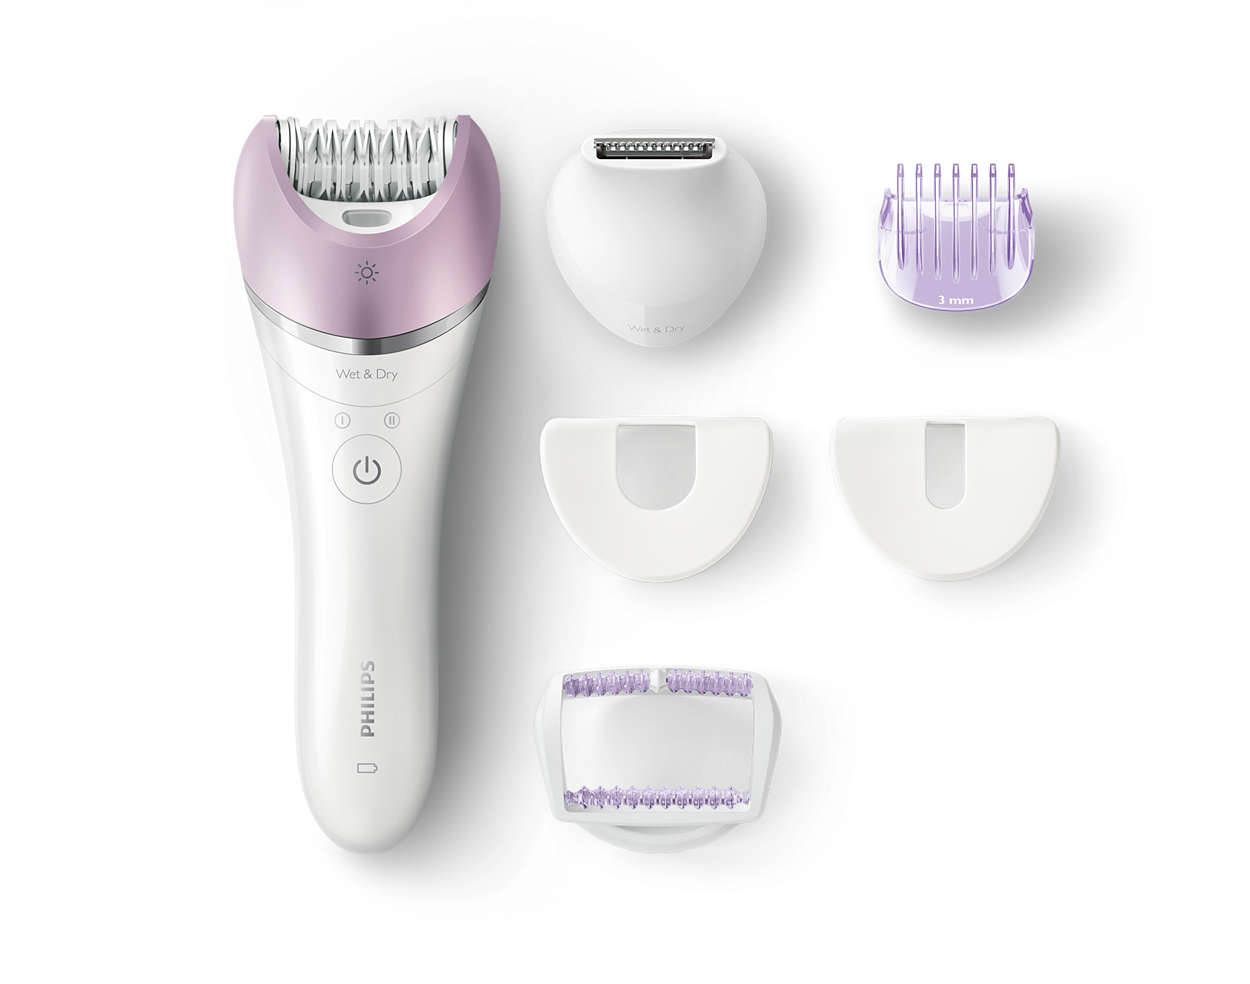 Our fastest epilation even on the finest of hairs